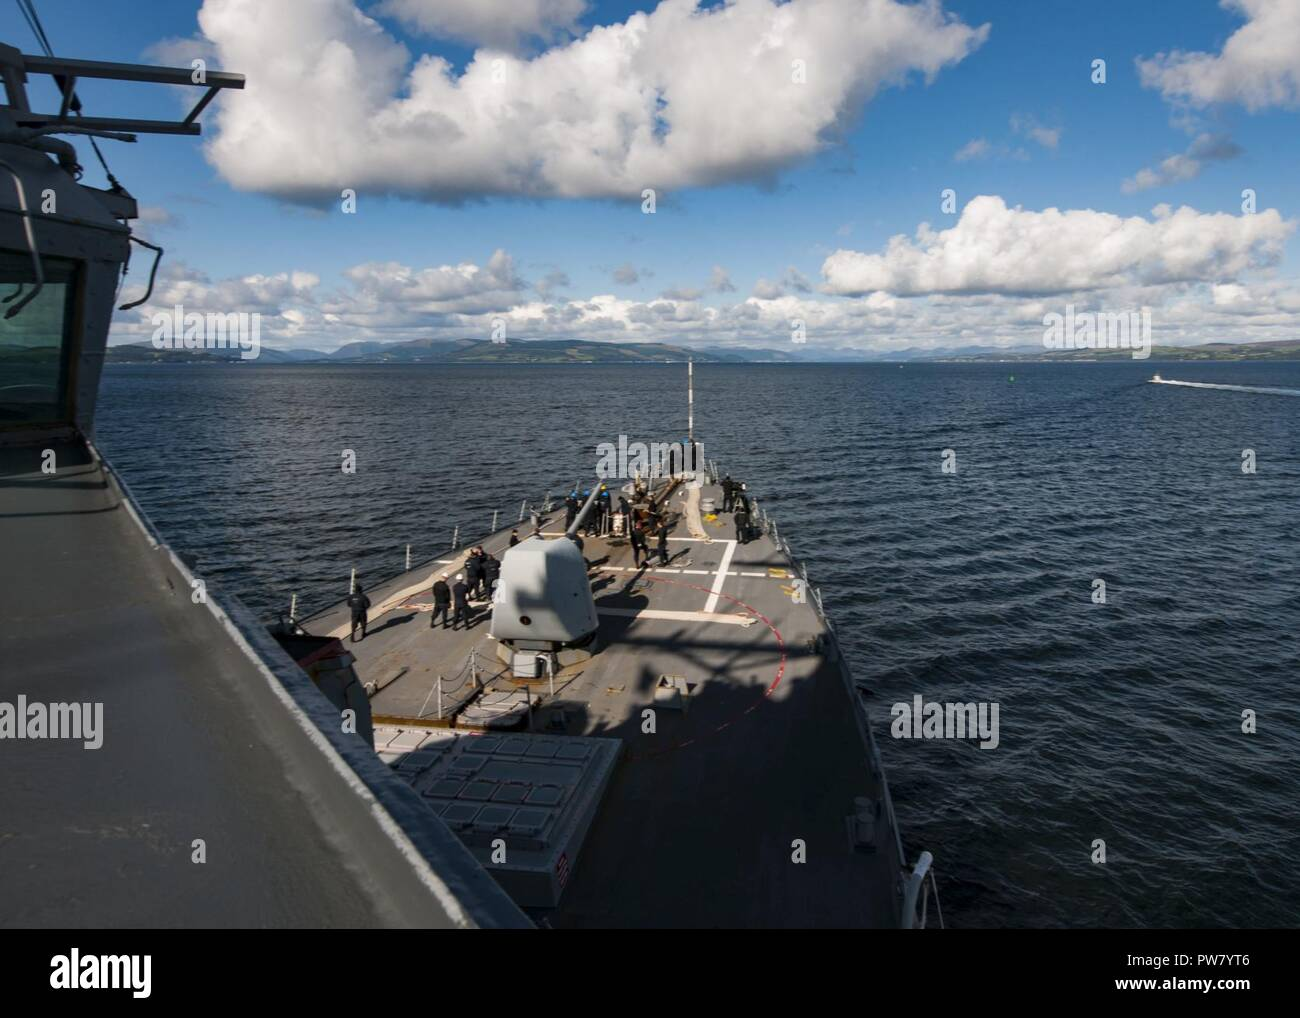 FASLANE, Scotland (Sept. 21, 2017) The Arleigh Burke-class guided-missile destroyer USS Mitscher (DDG 57) arrives at Her Majesty's Naval Base Clyde in Scotland, Sept. 21, 2017. Mitscher, homeported in Norfolk, Va., is conducting naval operations in the U.S. 6th Fleet area of operations in support of U.S. national security interests in Europe. - Stock Image